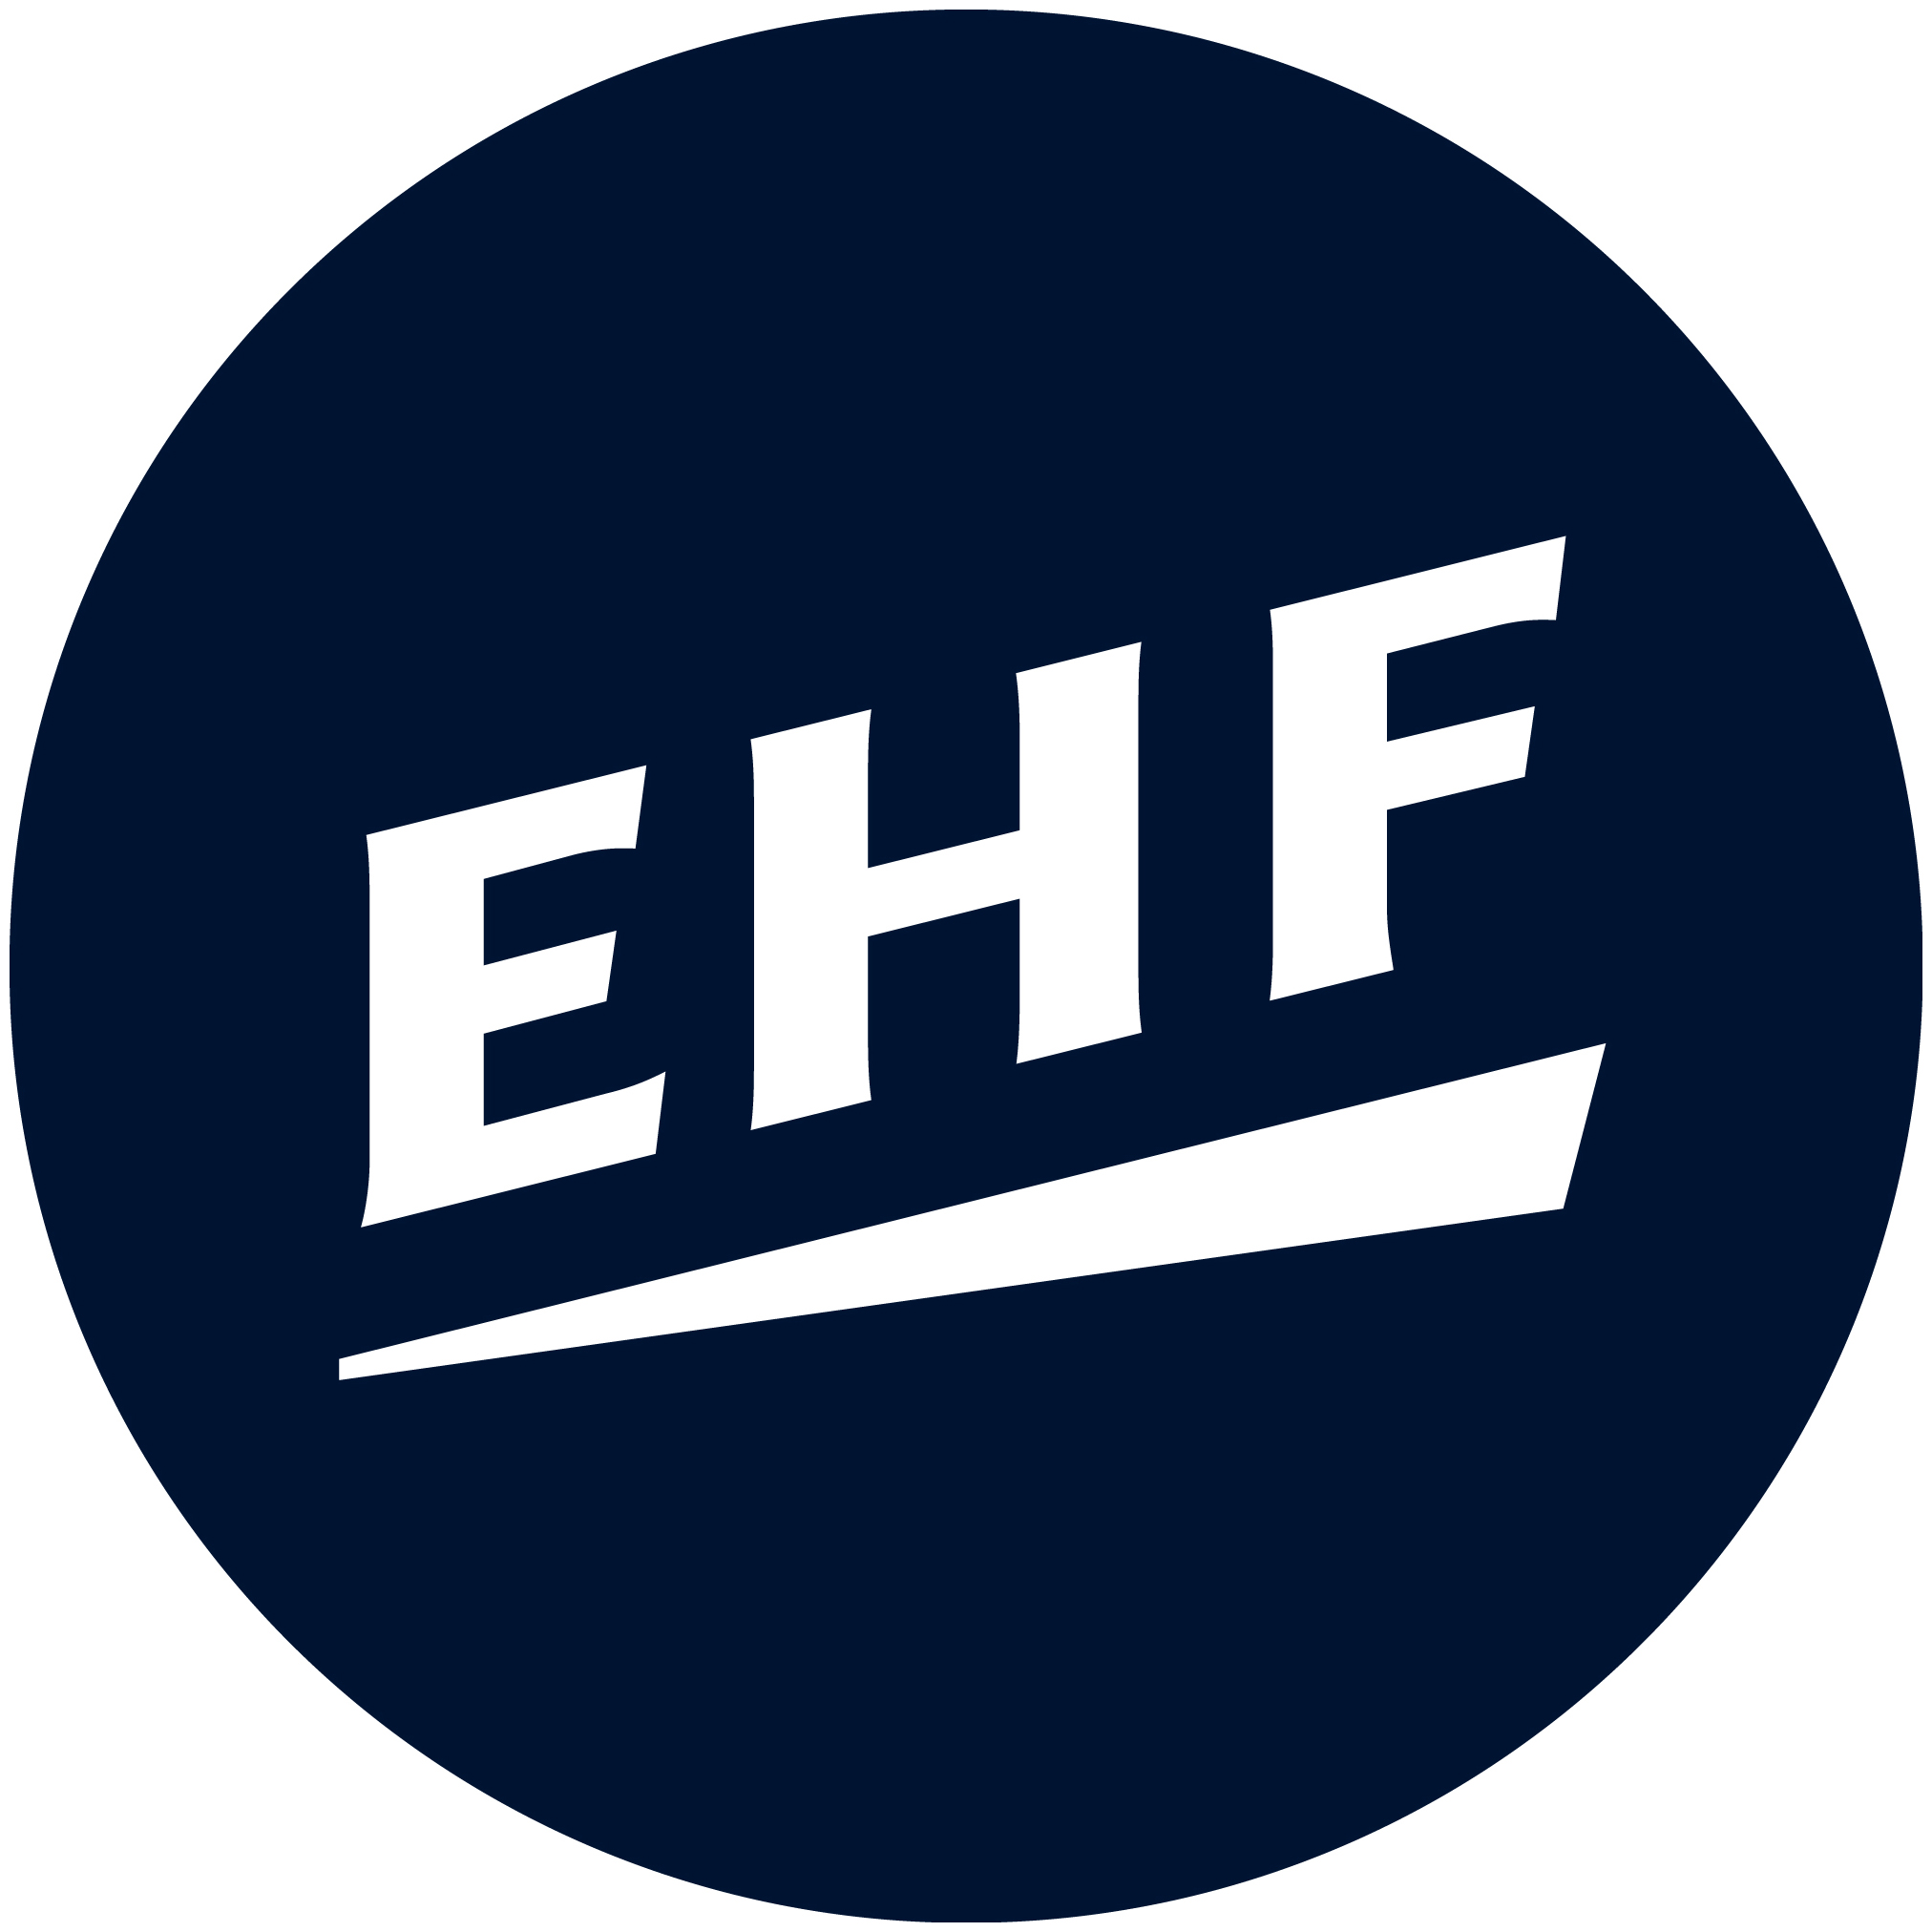 2021 European Handball Women's 19 EHF EURO